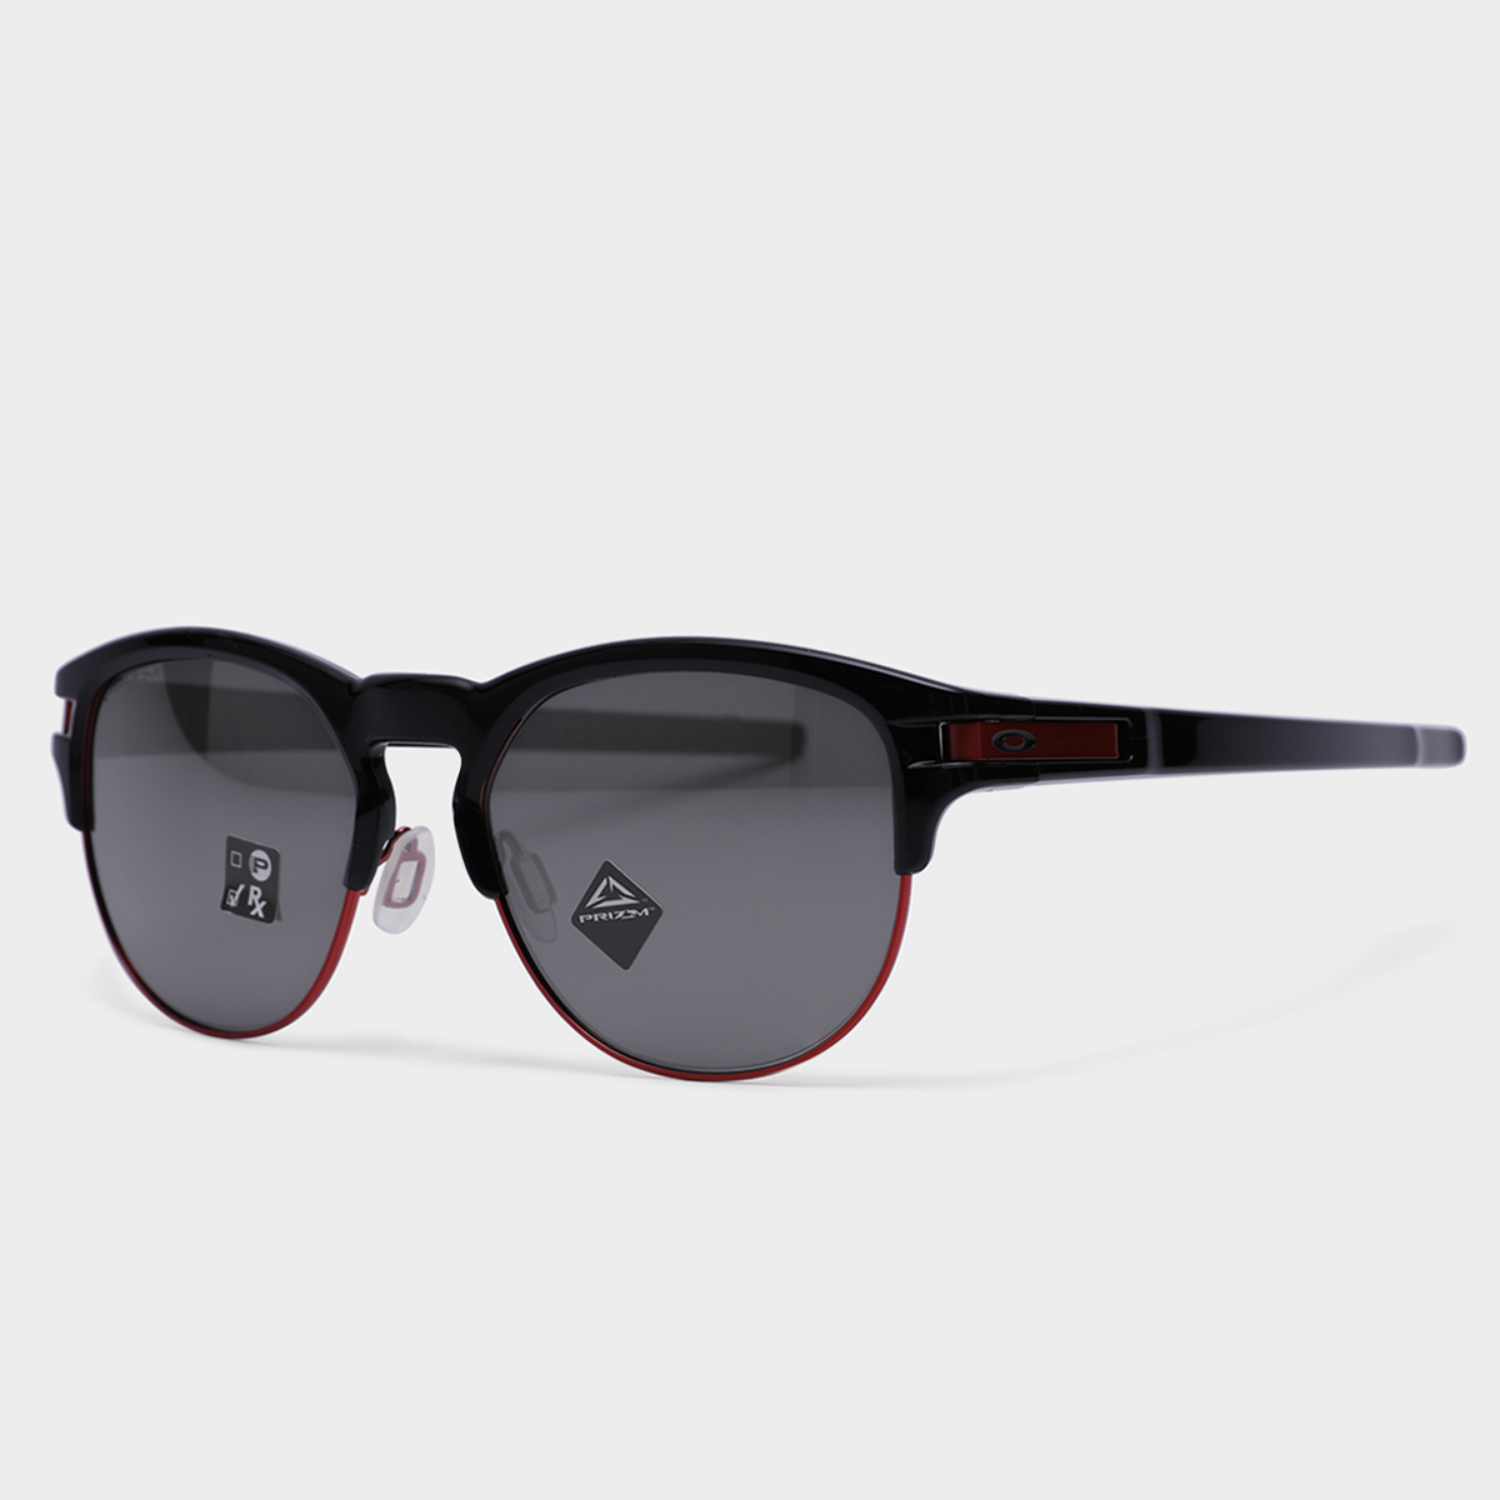 [오클리선글라스] 래치키 LATCH KEY OO9394 0555(Prizm Black Iridium Lens) (OAKLEY)